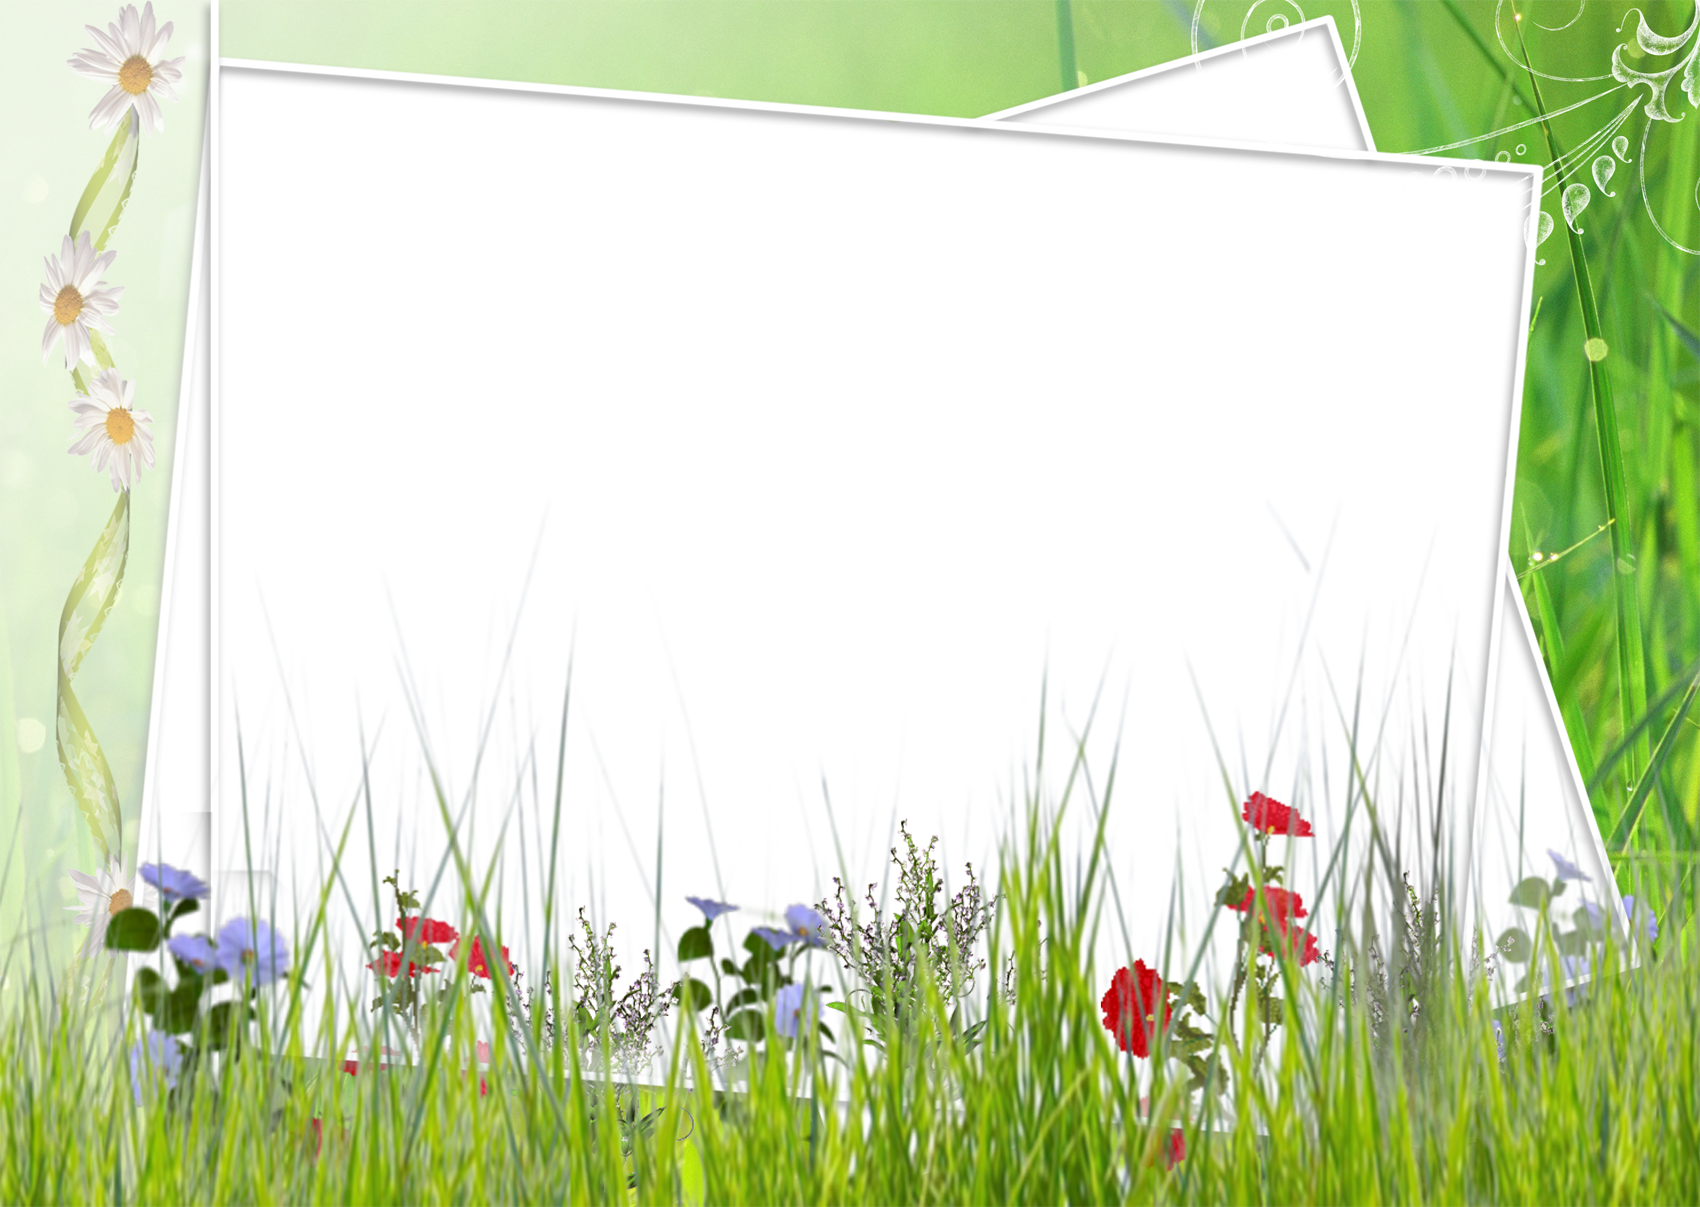 Field clipart green field. And white transparent frame